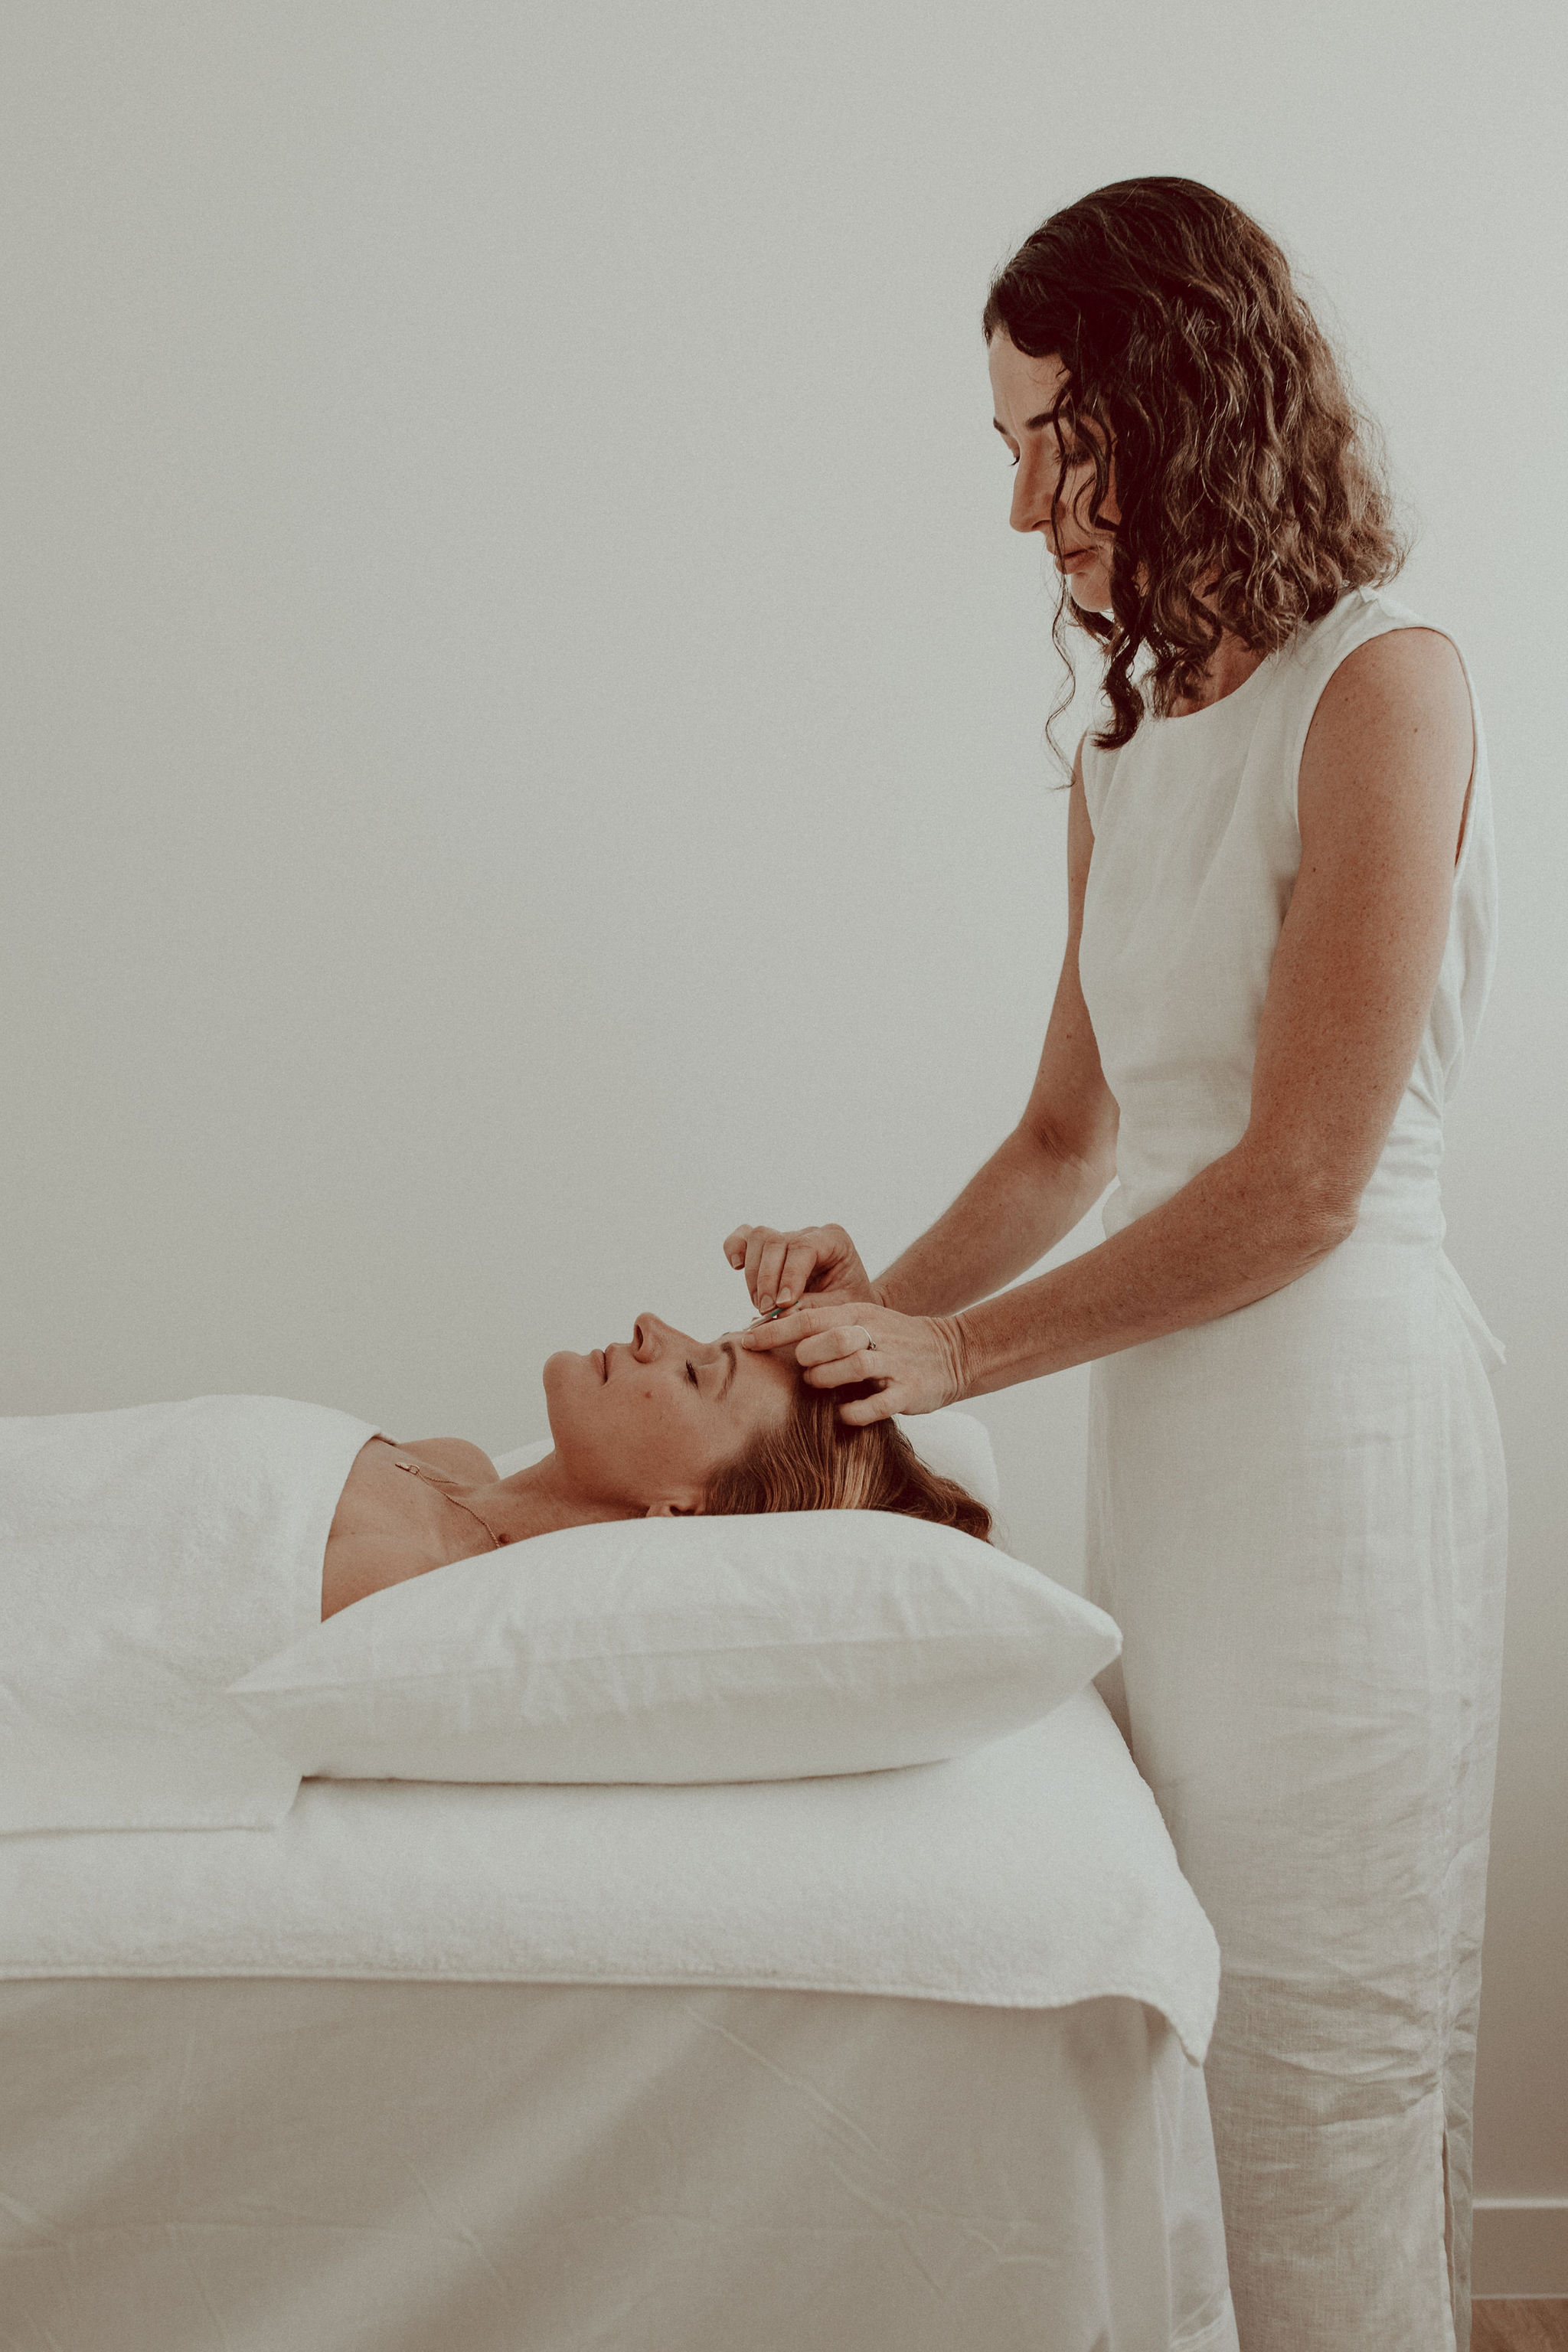 Eva Rose applying acupuncture treatment to a client